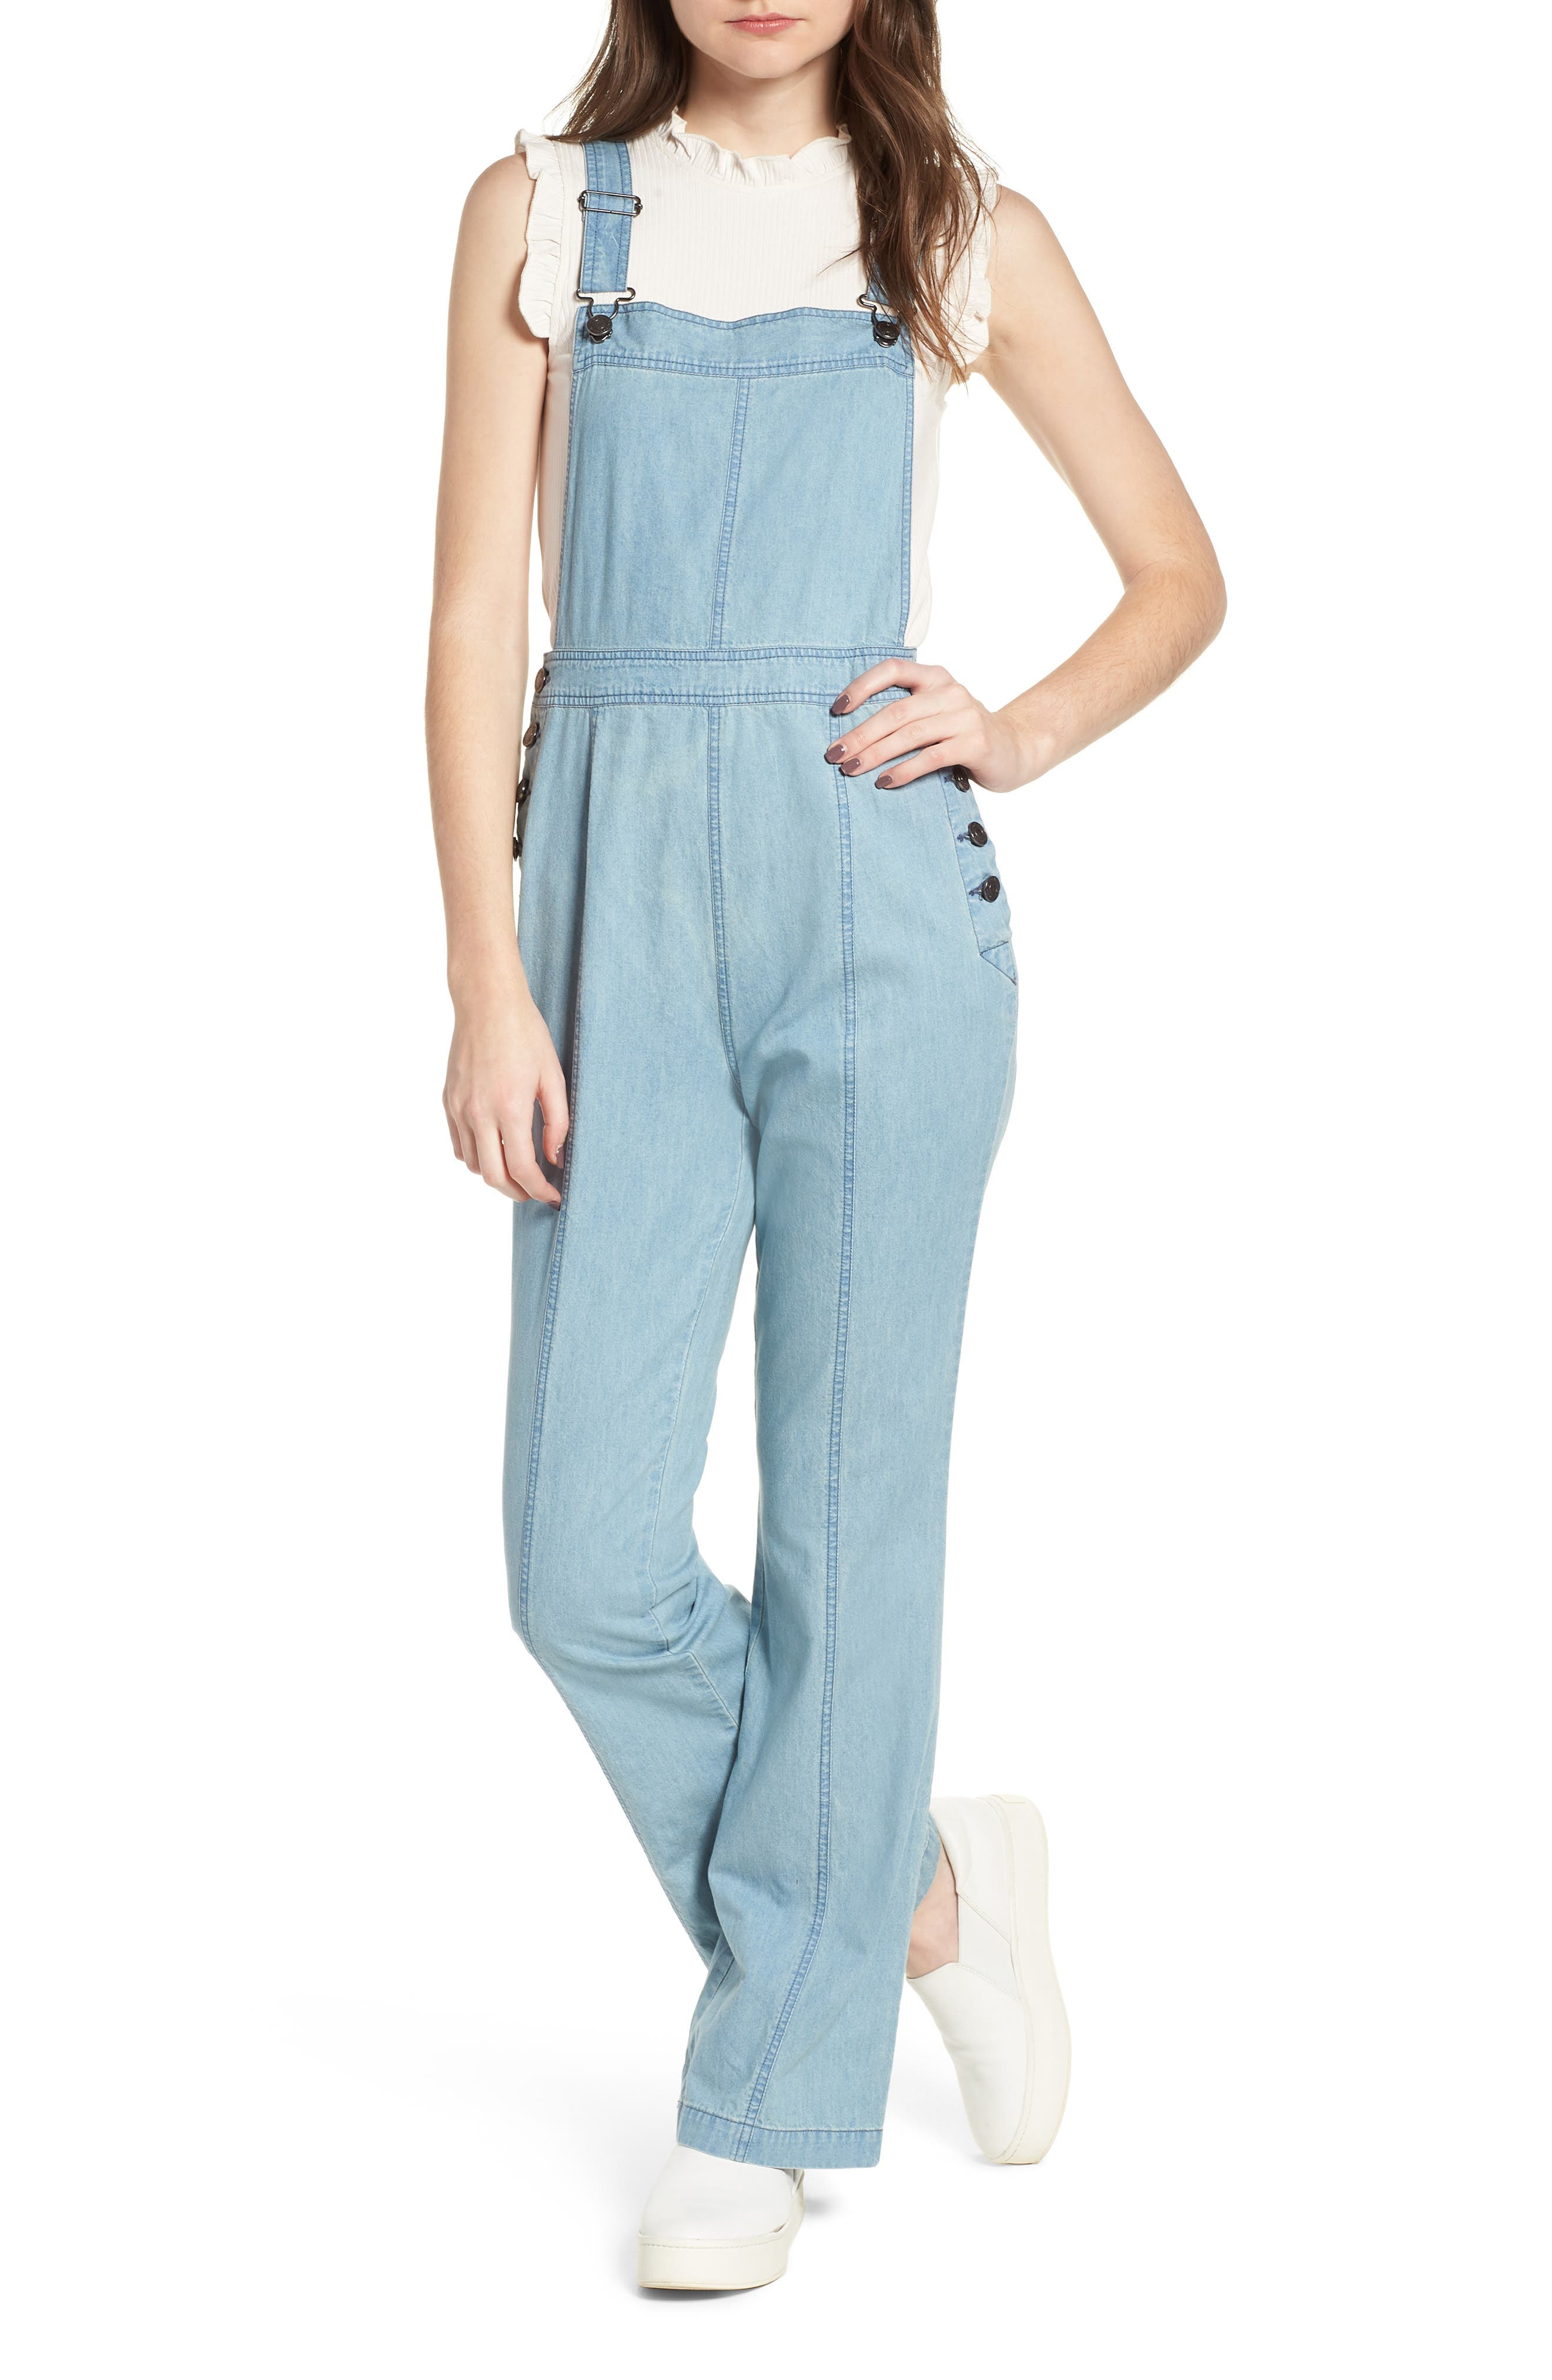 Meliani Denim Overalls,                         Main,                         color, Denim